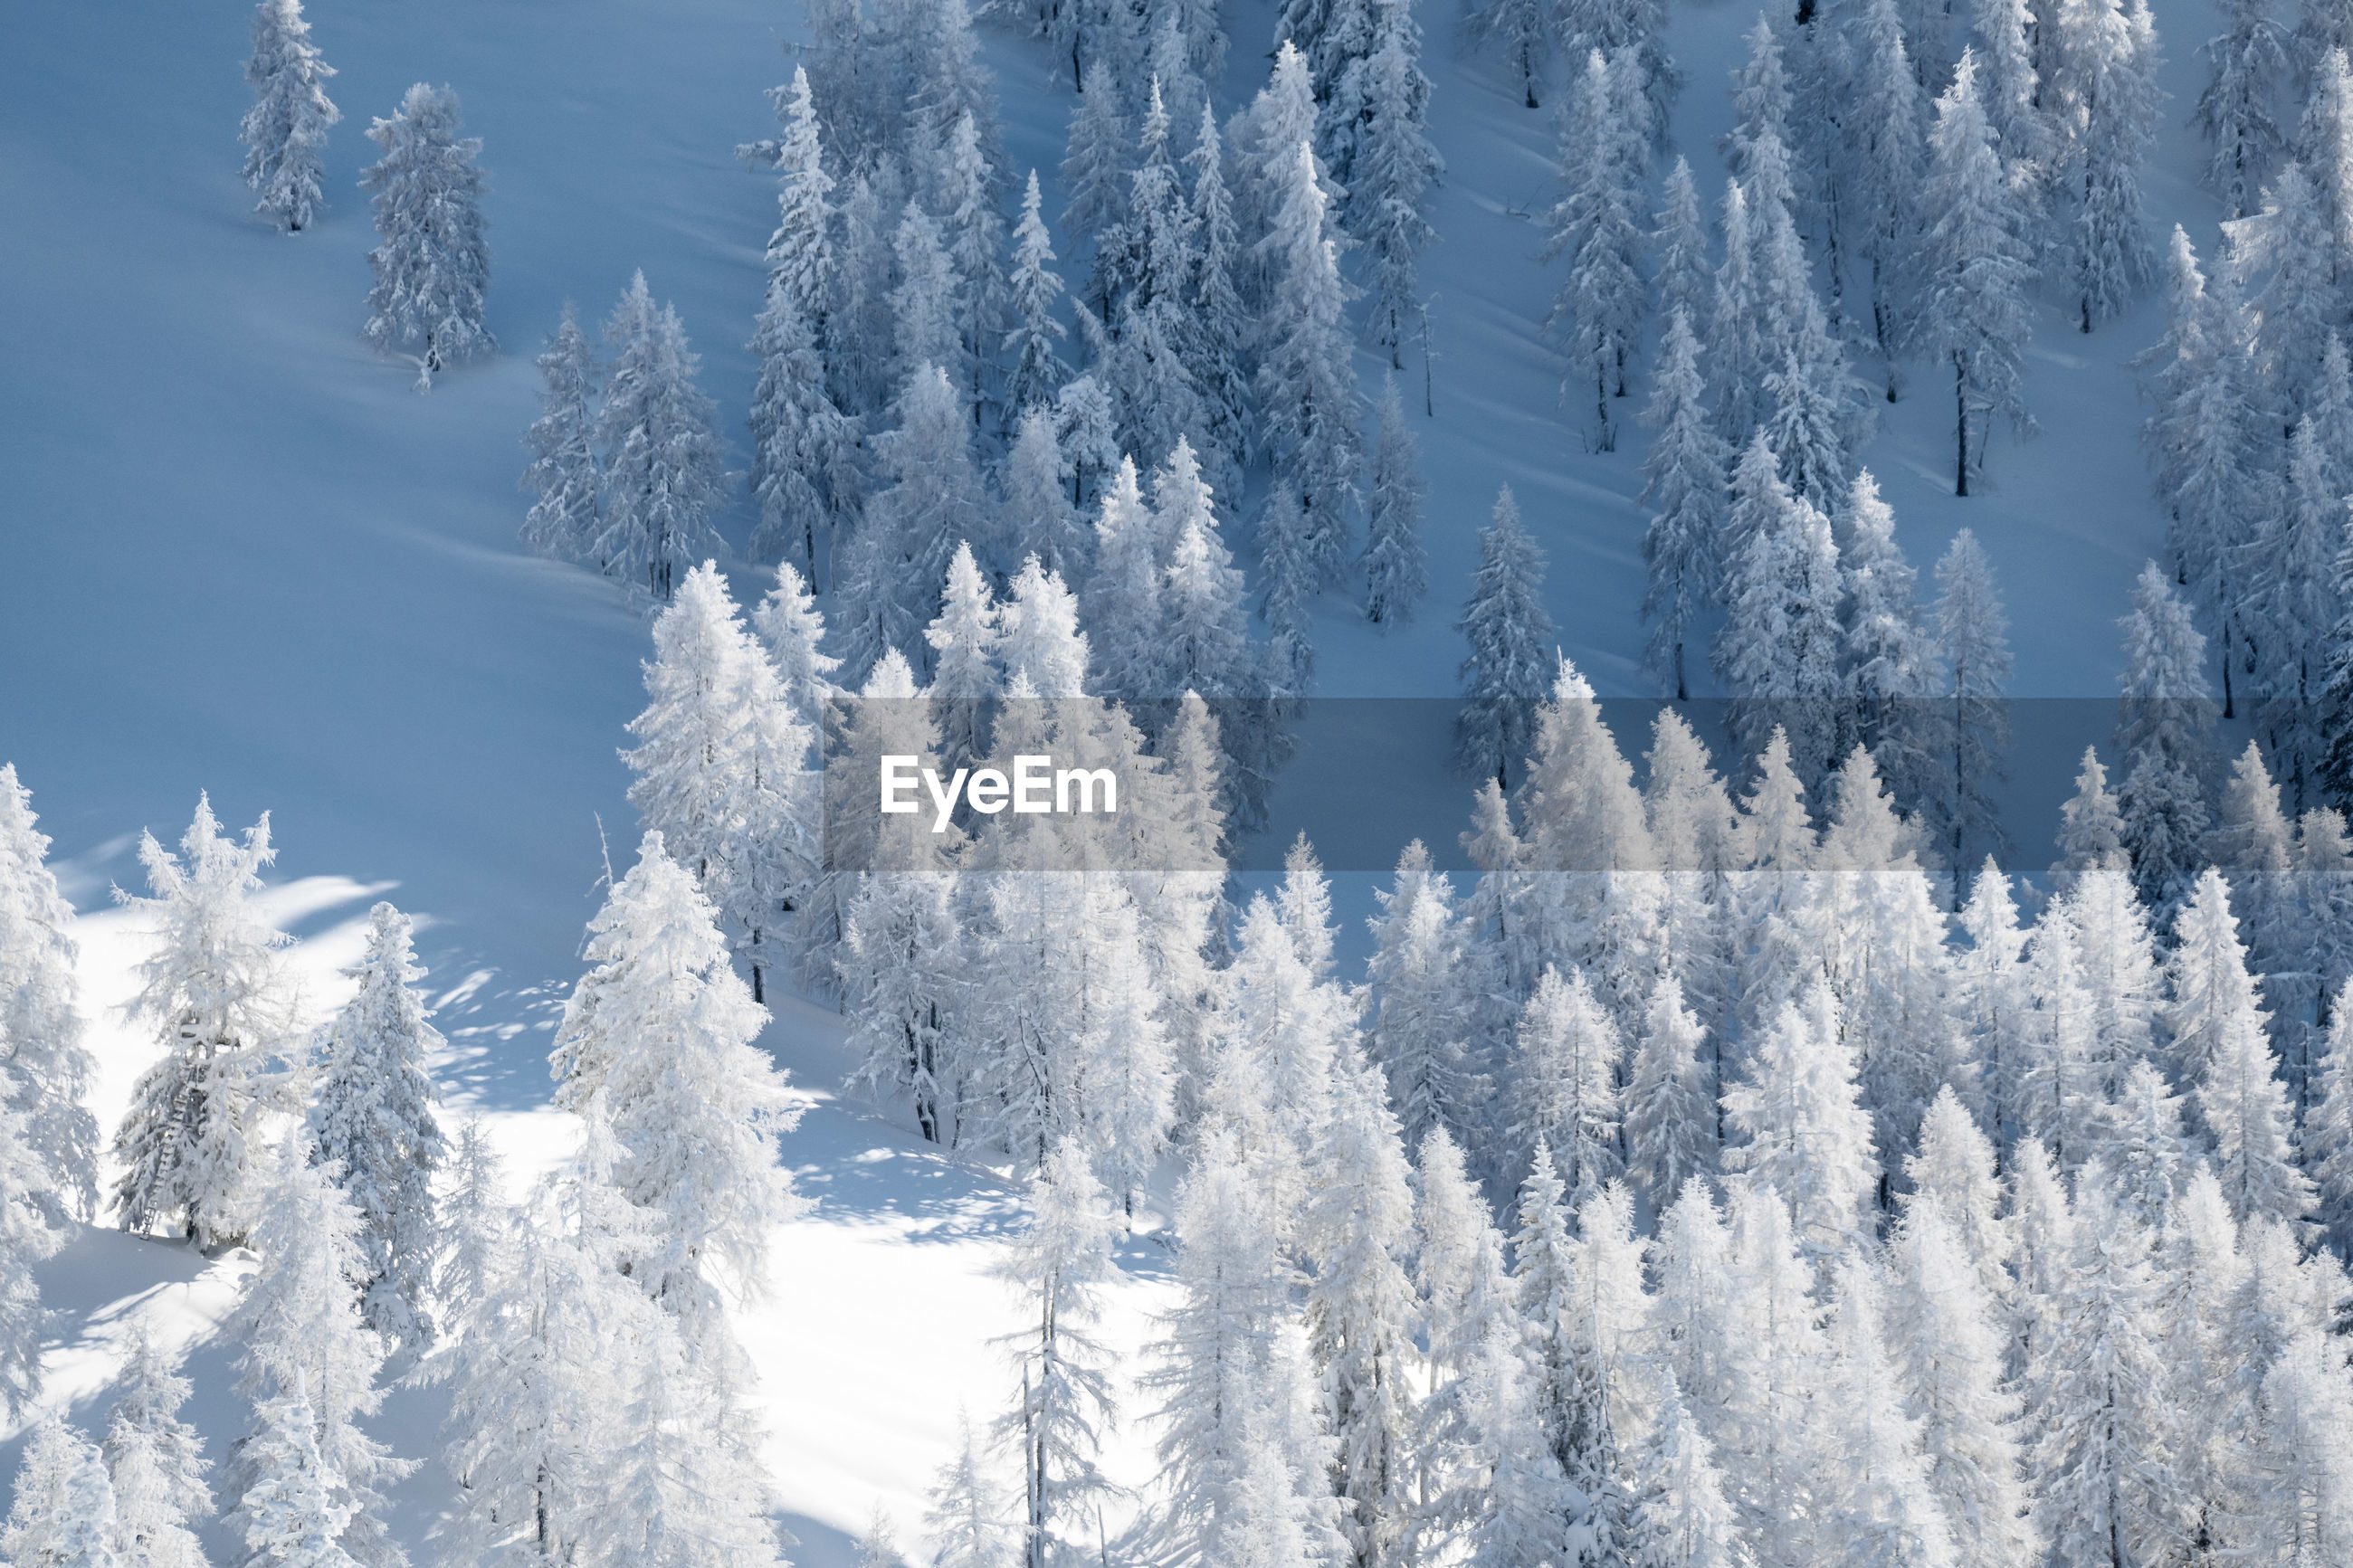 Snow covered pine trees on land